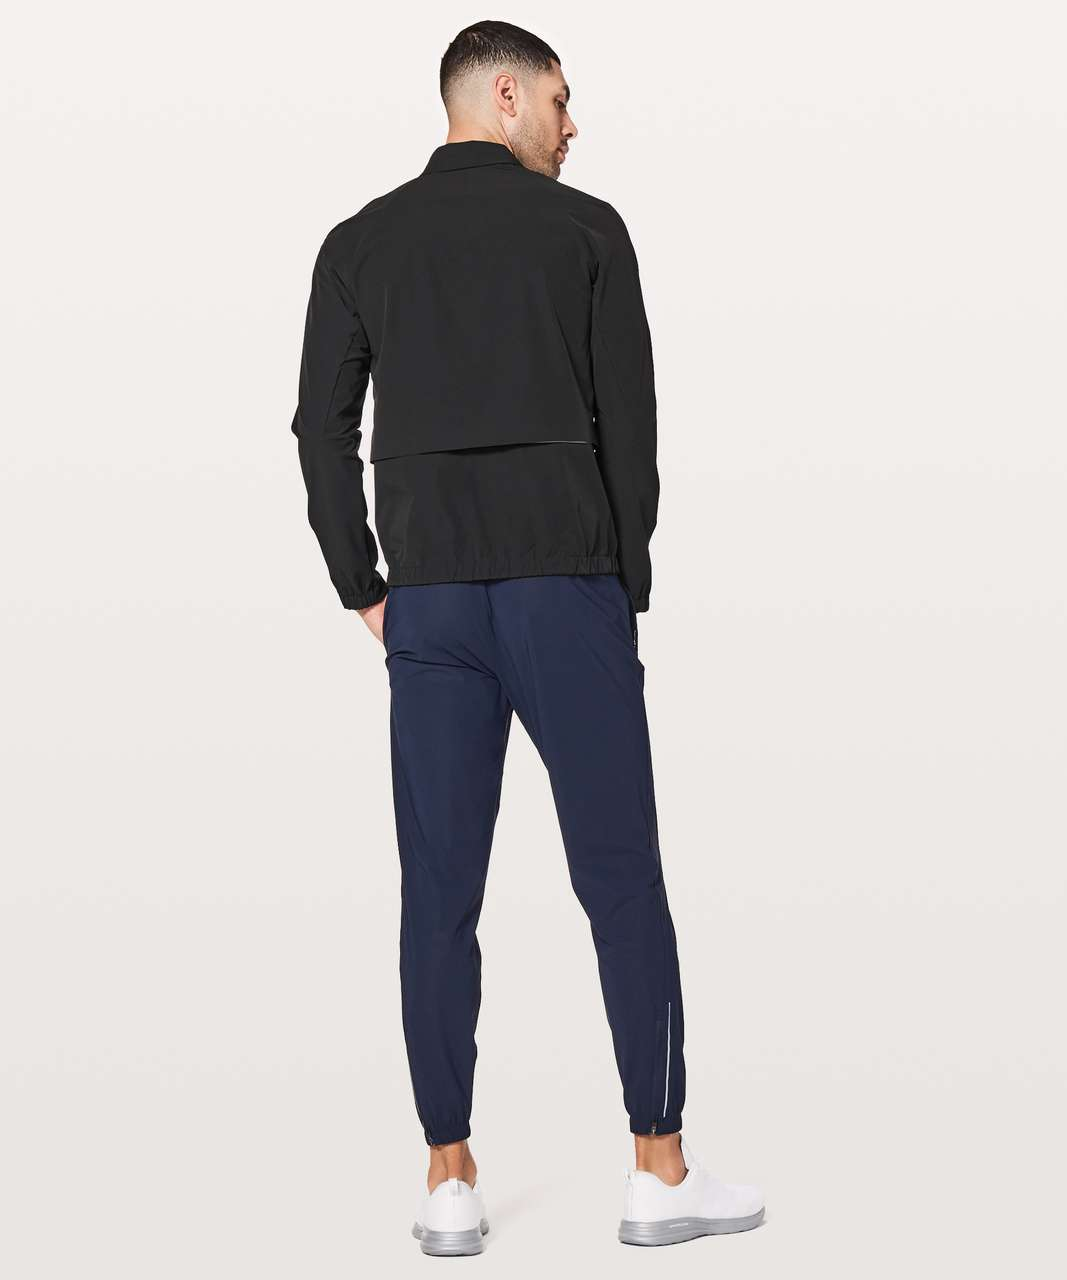 Lululemon Coaches Jacket - Black